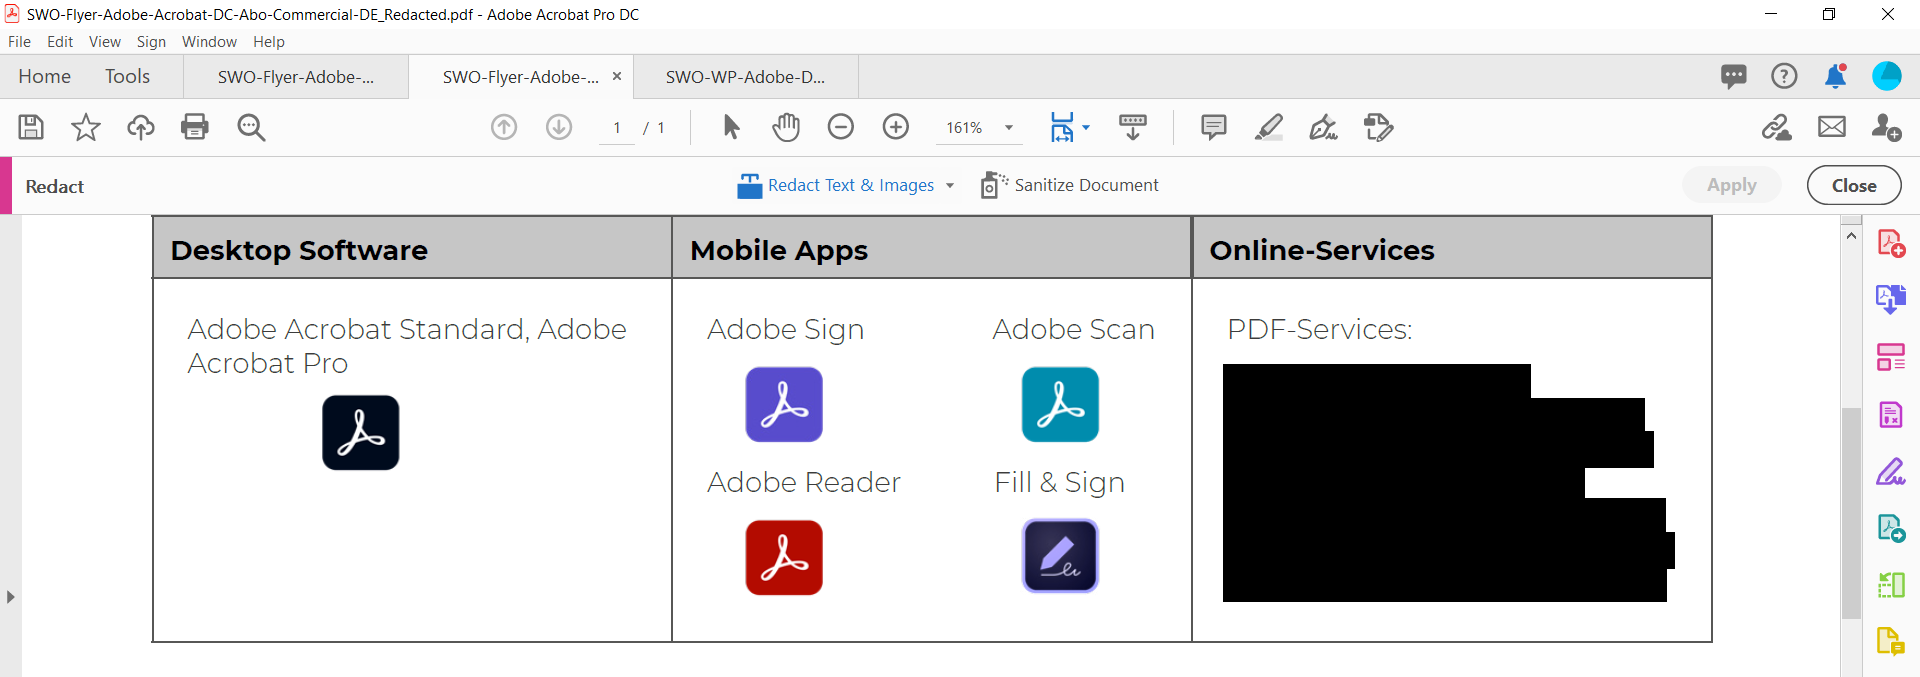 Document with redacted text in Adobe Acrobat Pro